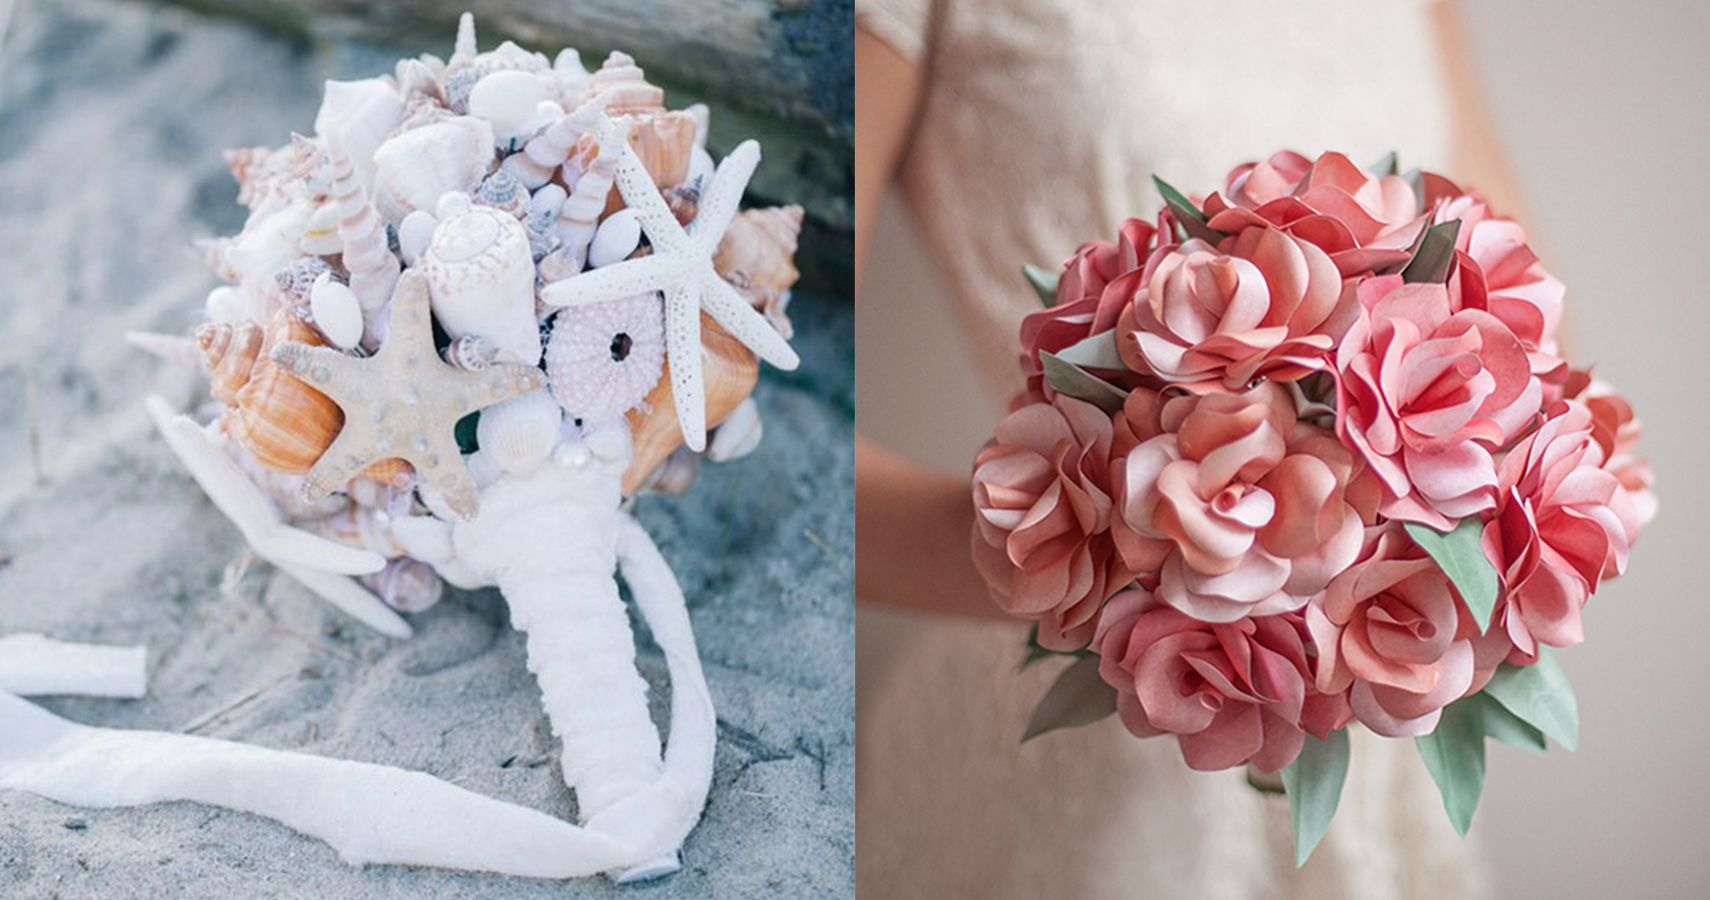 10 Unique Non-Floral Bridal Bouquets That Are Totally DIY